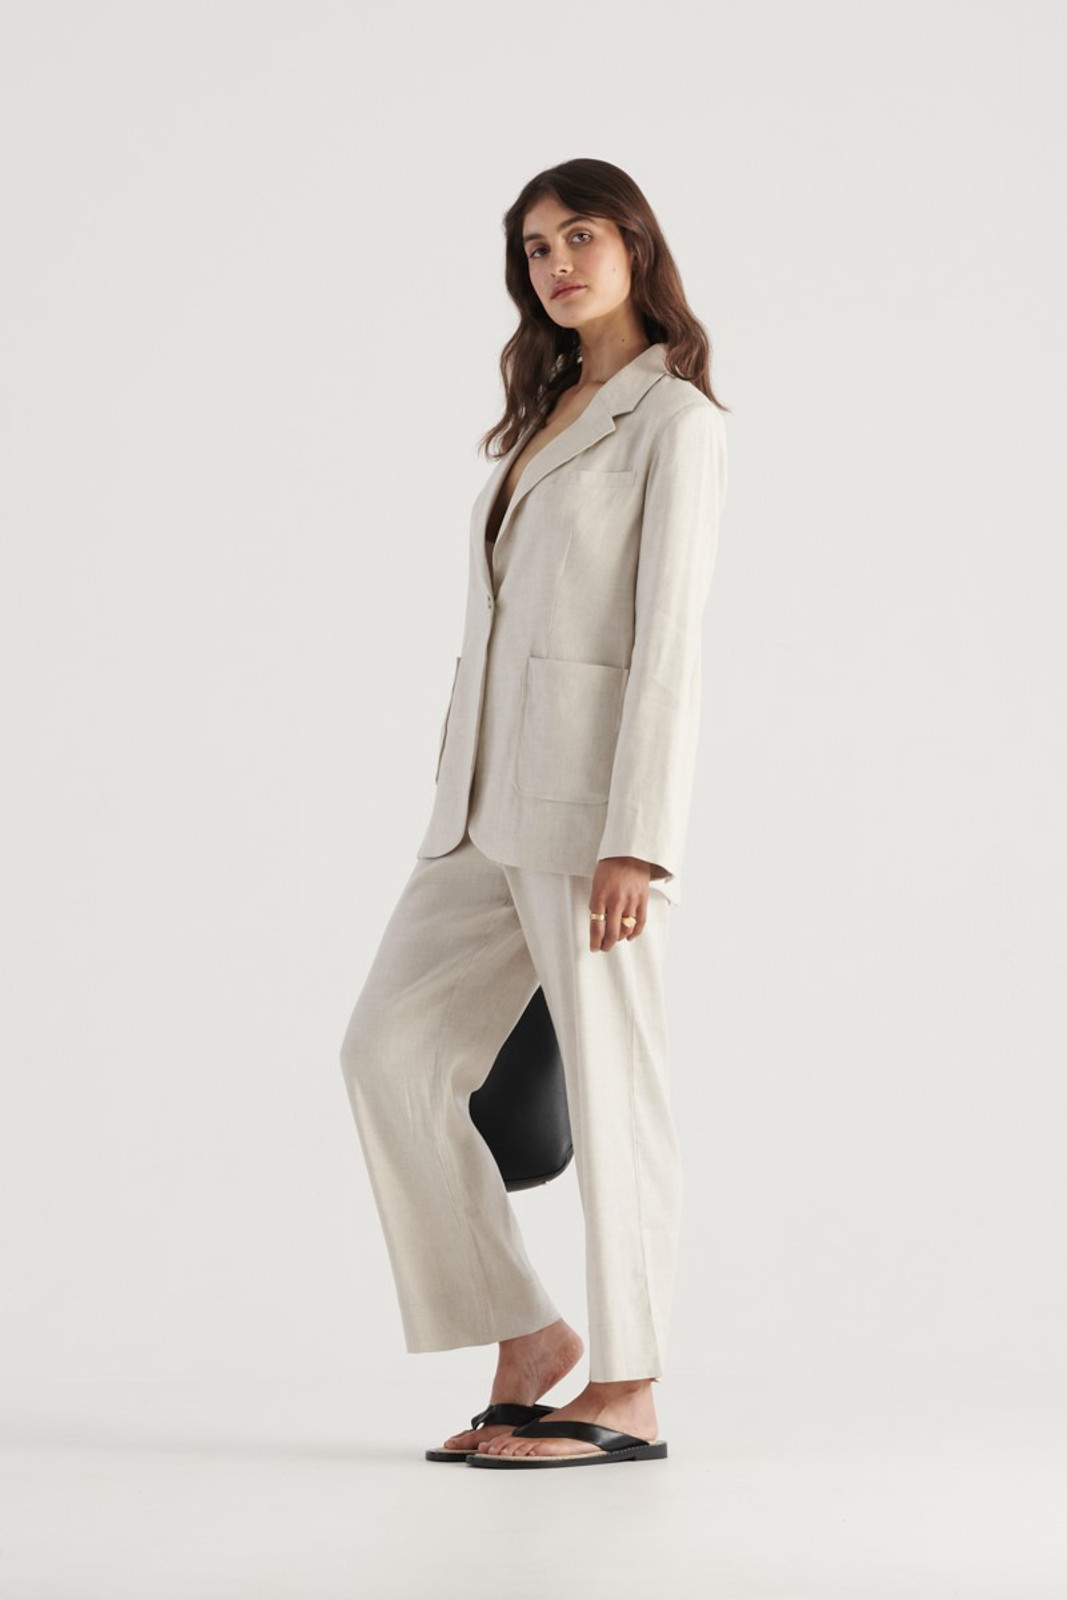 Elka Collective WOMENS Neutrals Cate Jacket 4